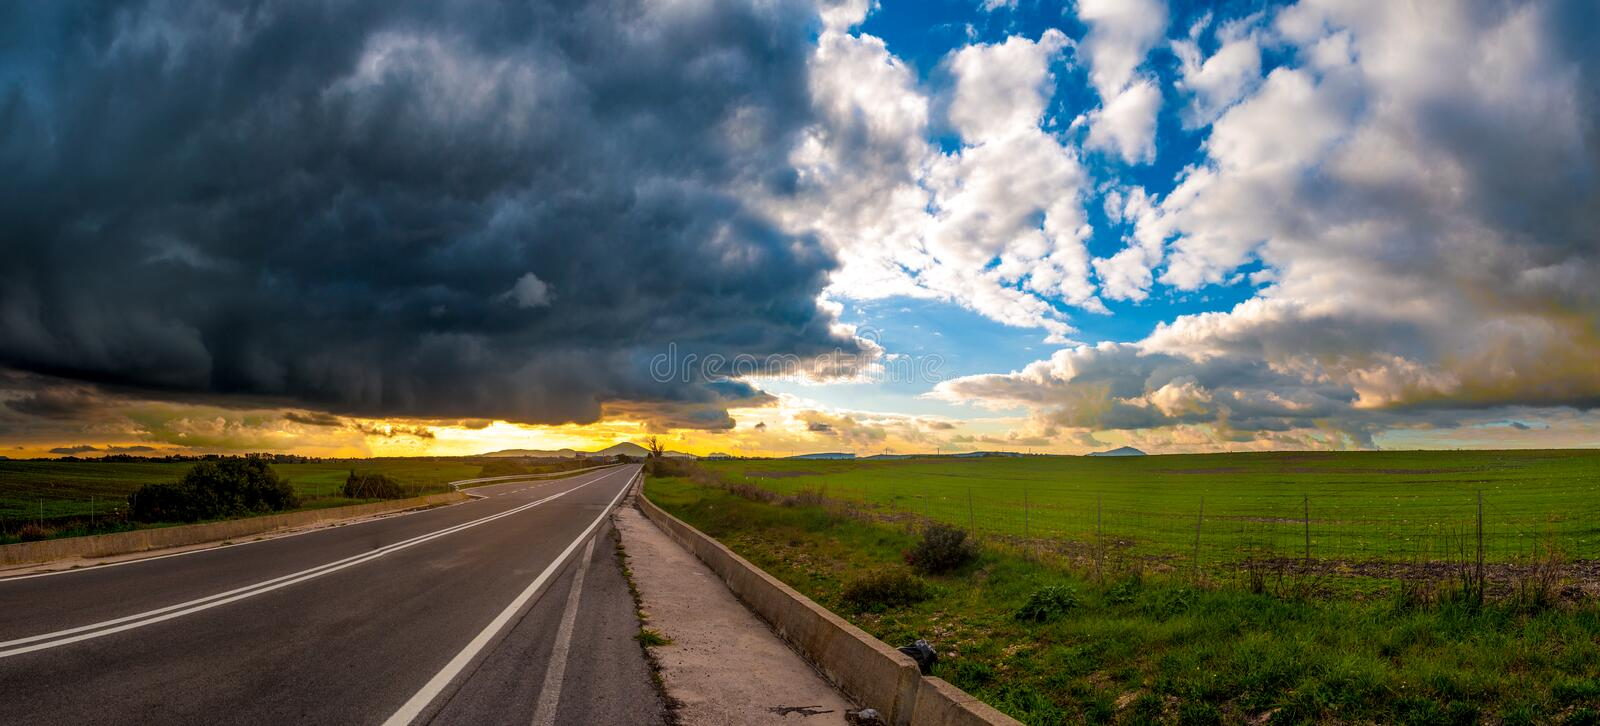 Desert road under a dramatic sky royalty free stock photography